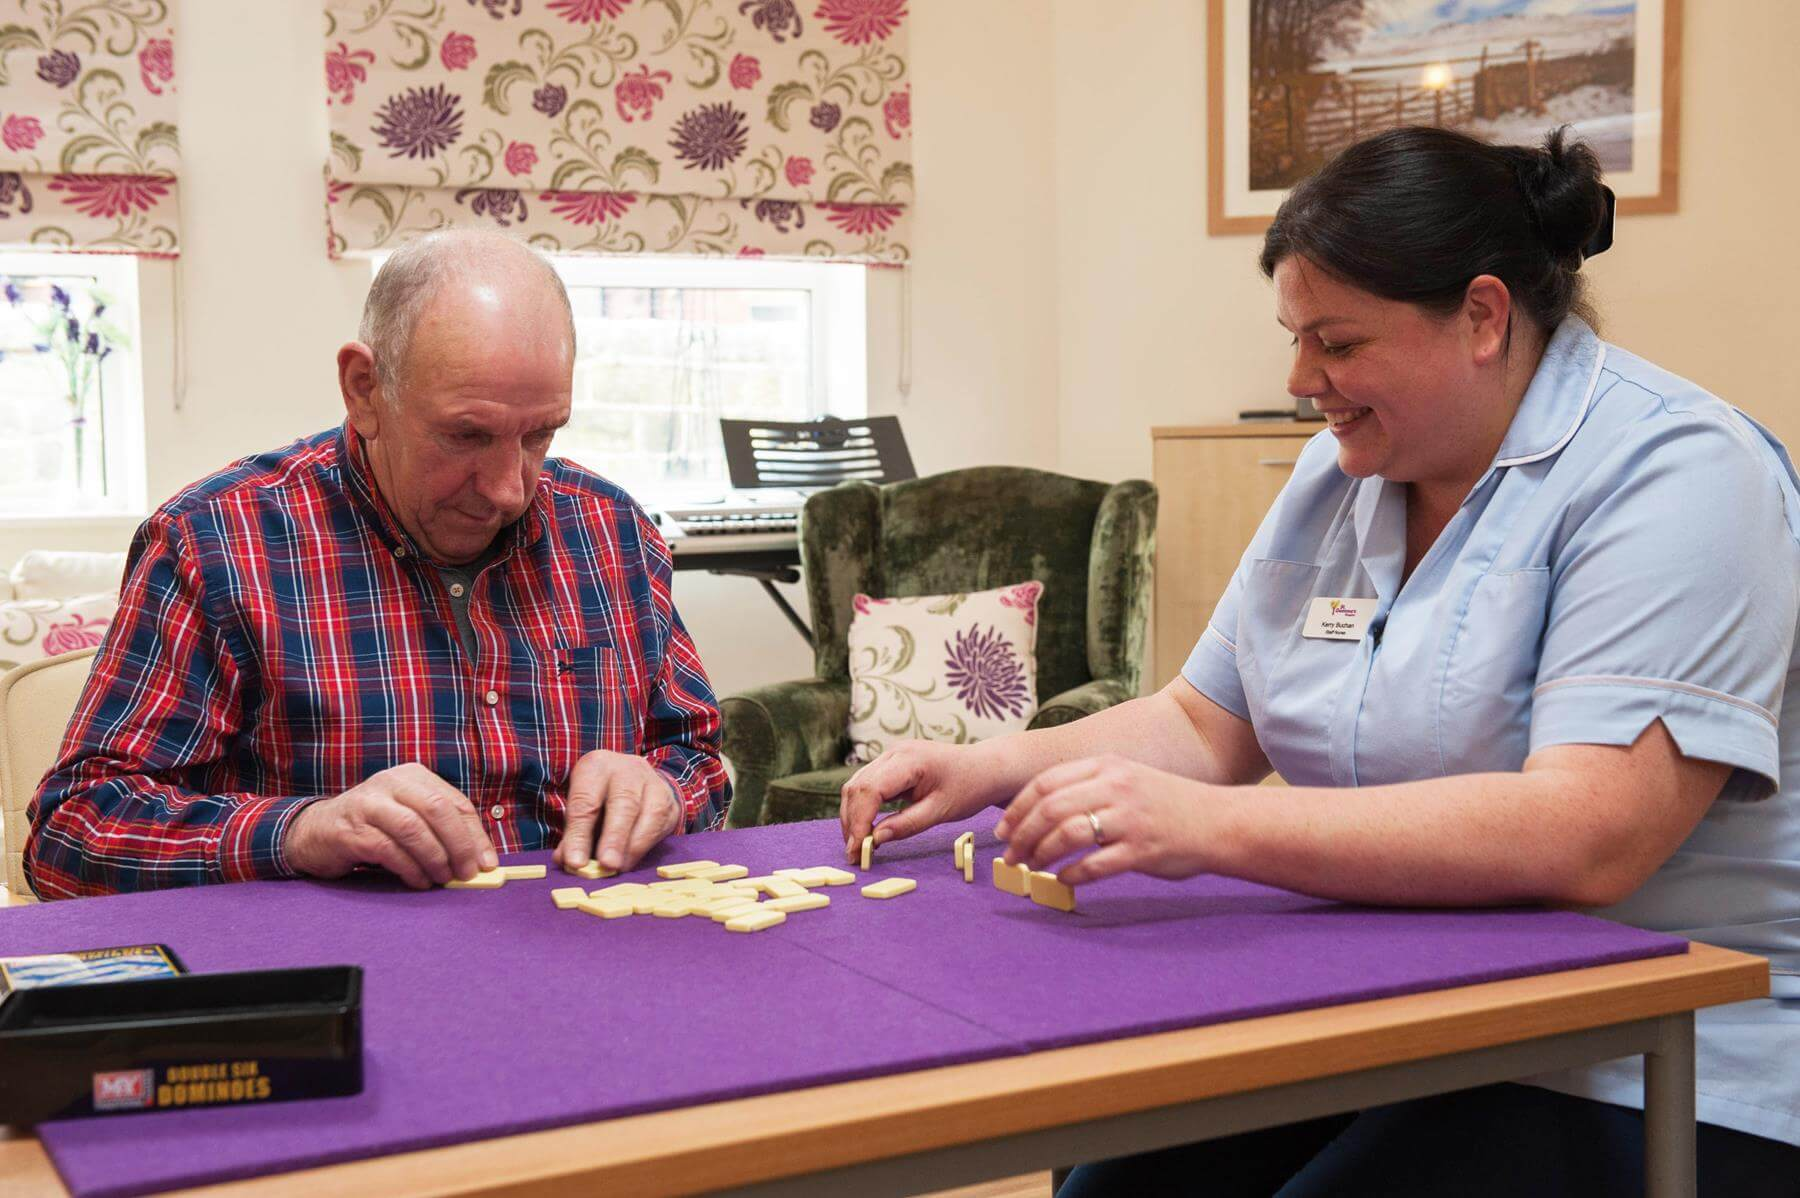 Nurse and Patient Playing Dominoes